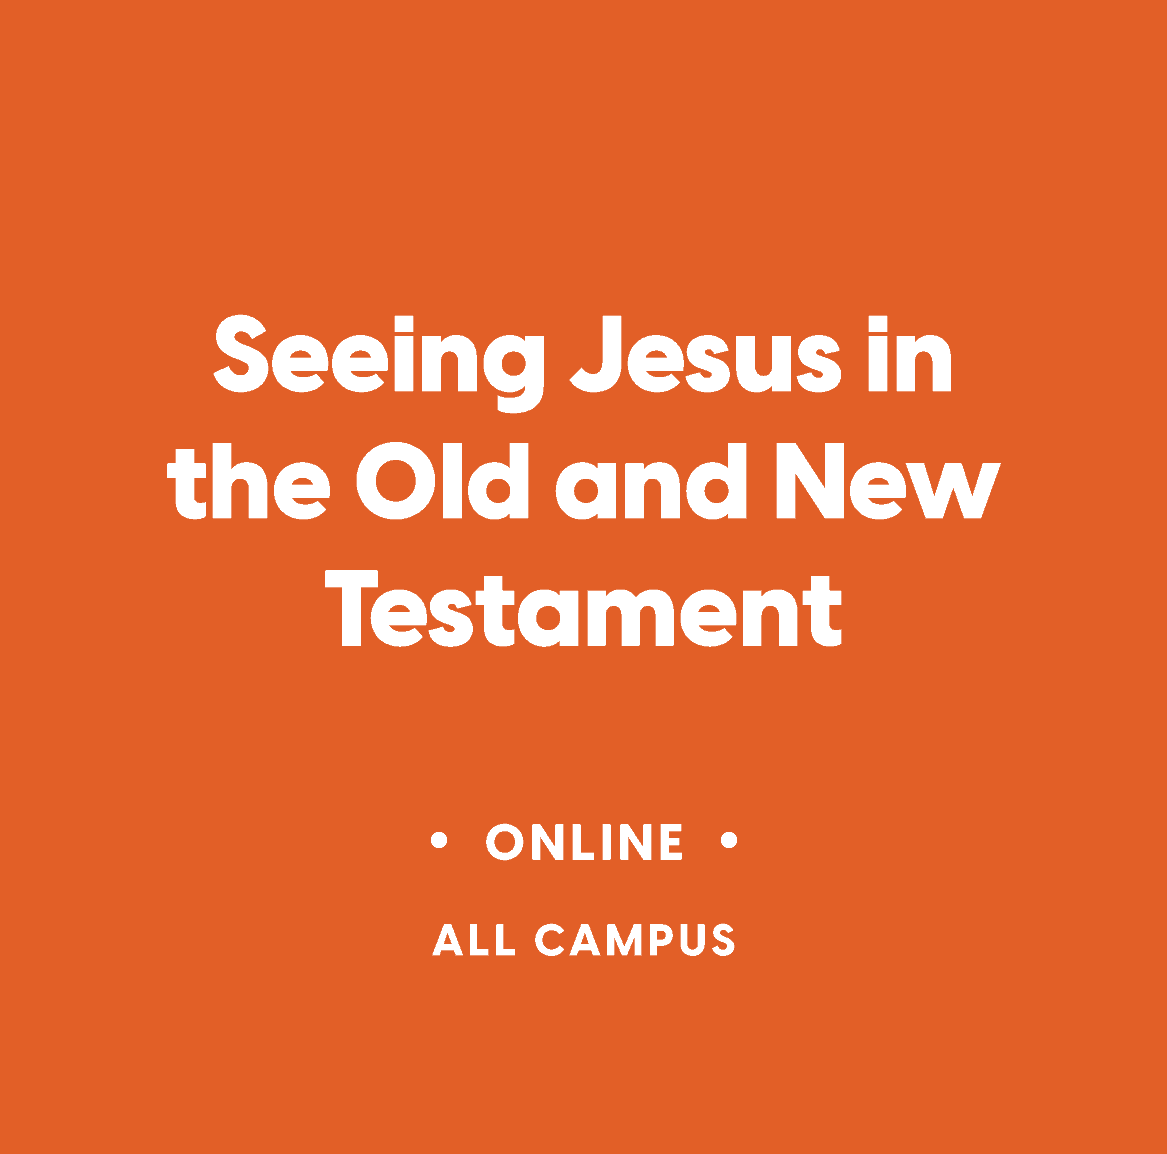 Co-Ed Online Bible Study:  Seeing Jesus in the Old and New Testament